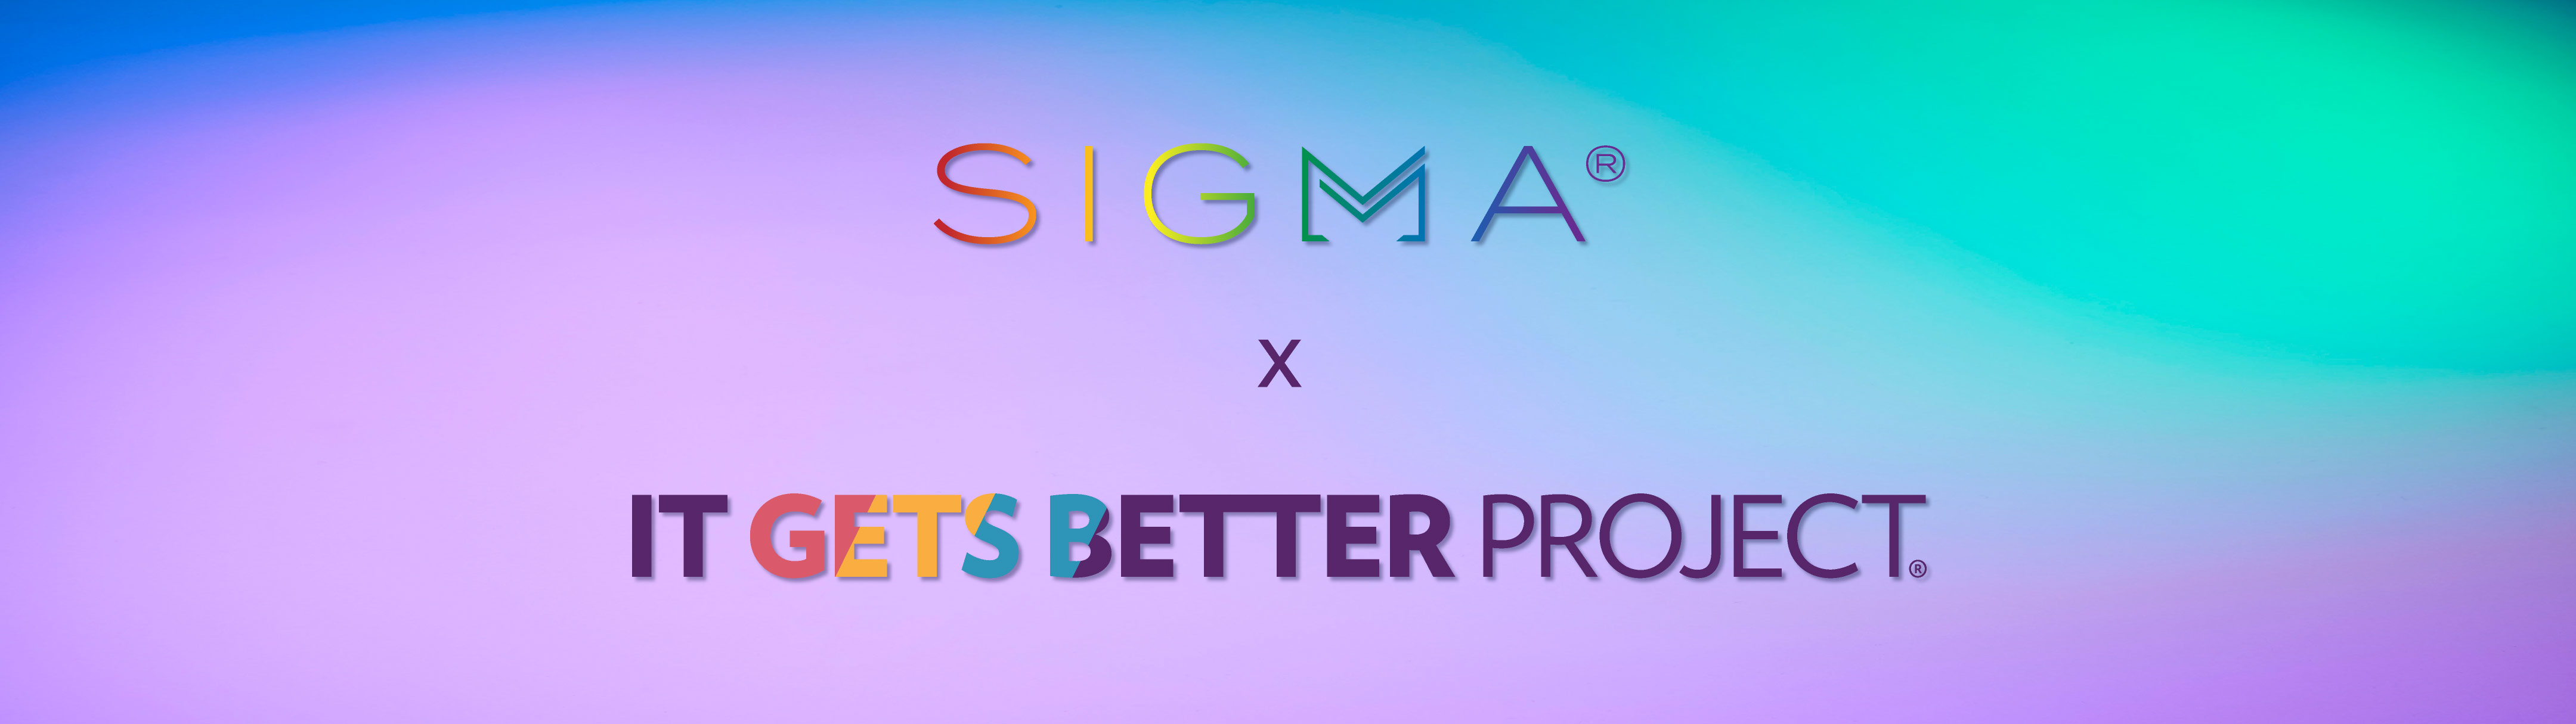 Sigma x it gets better